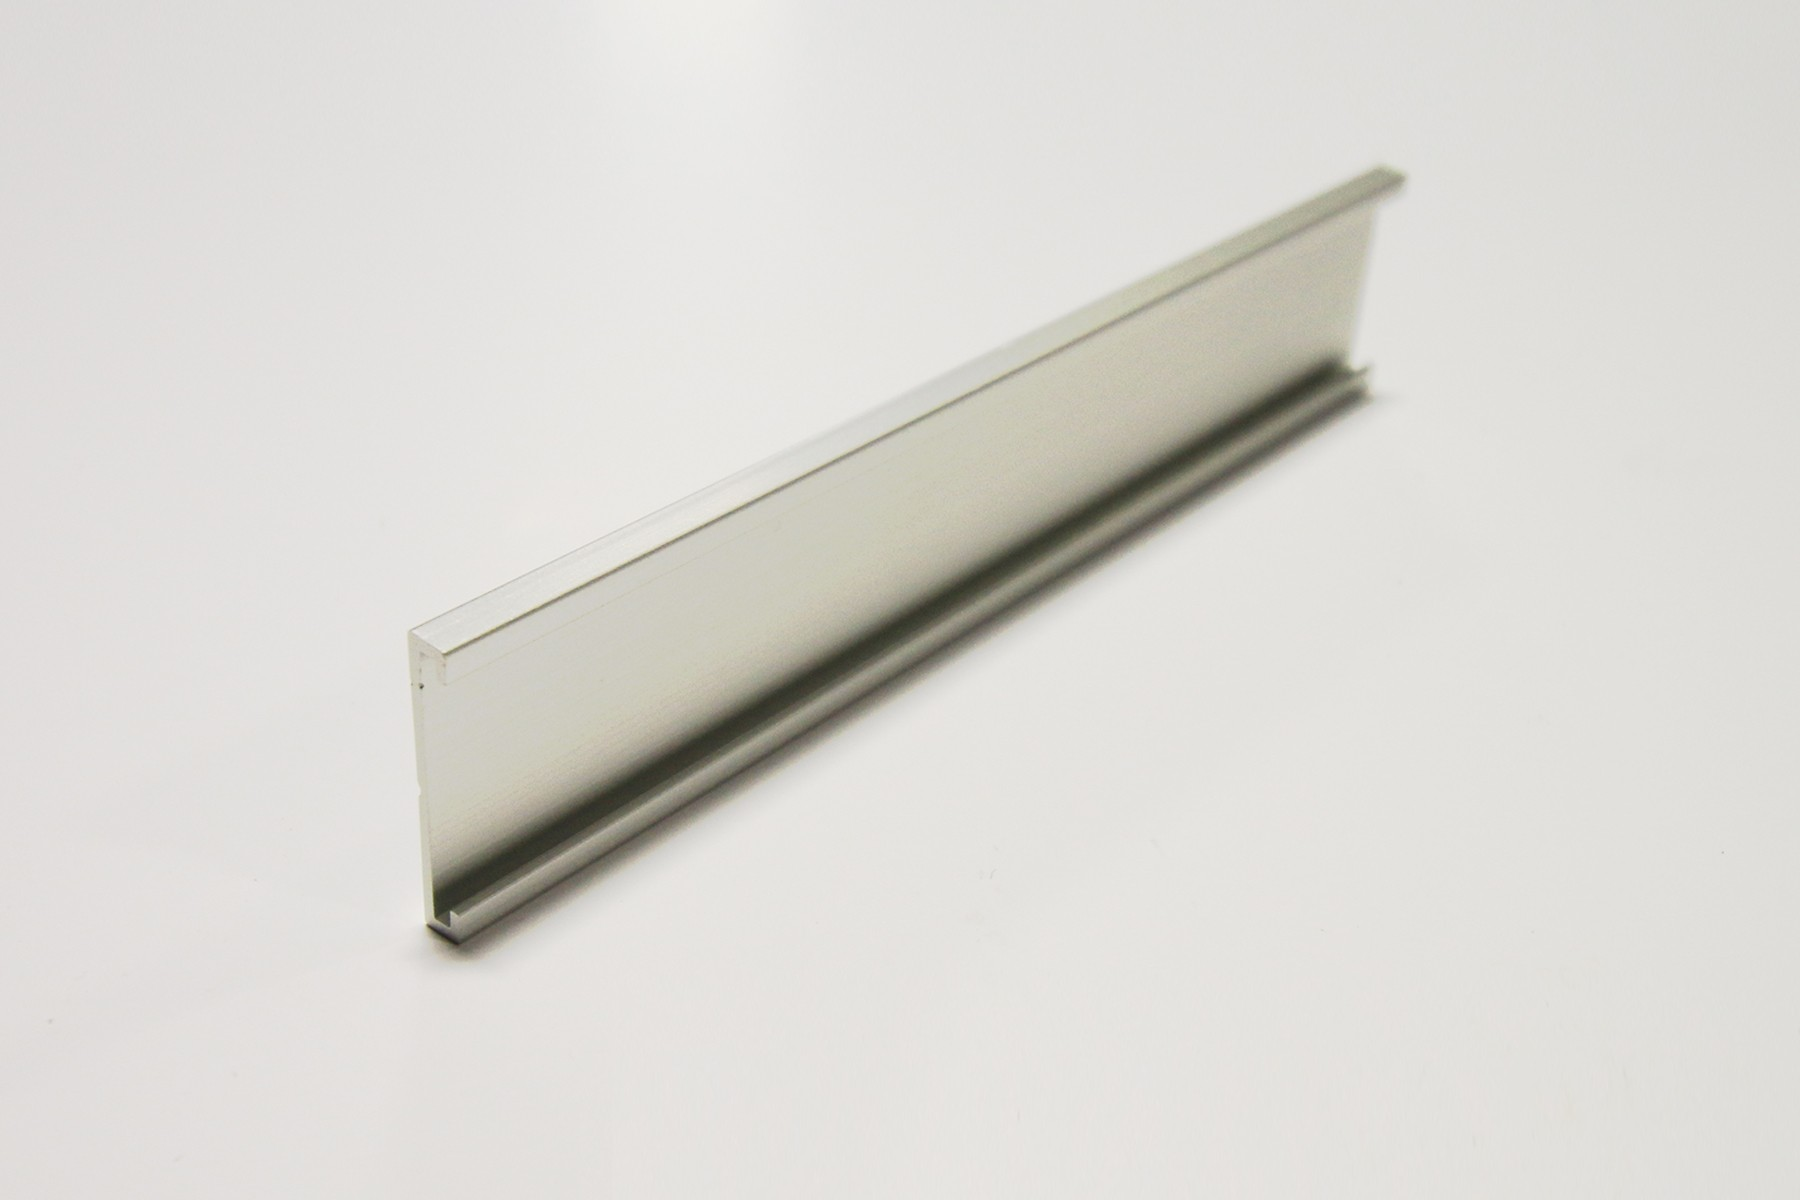 1 x 6 Wall Holder, Satin Silver